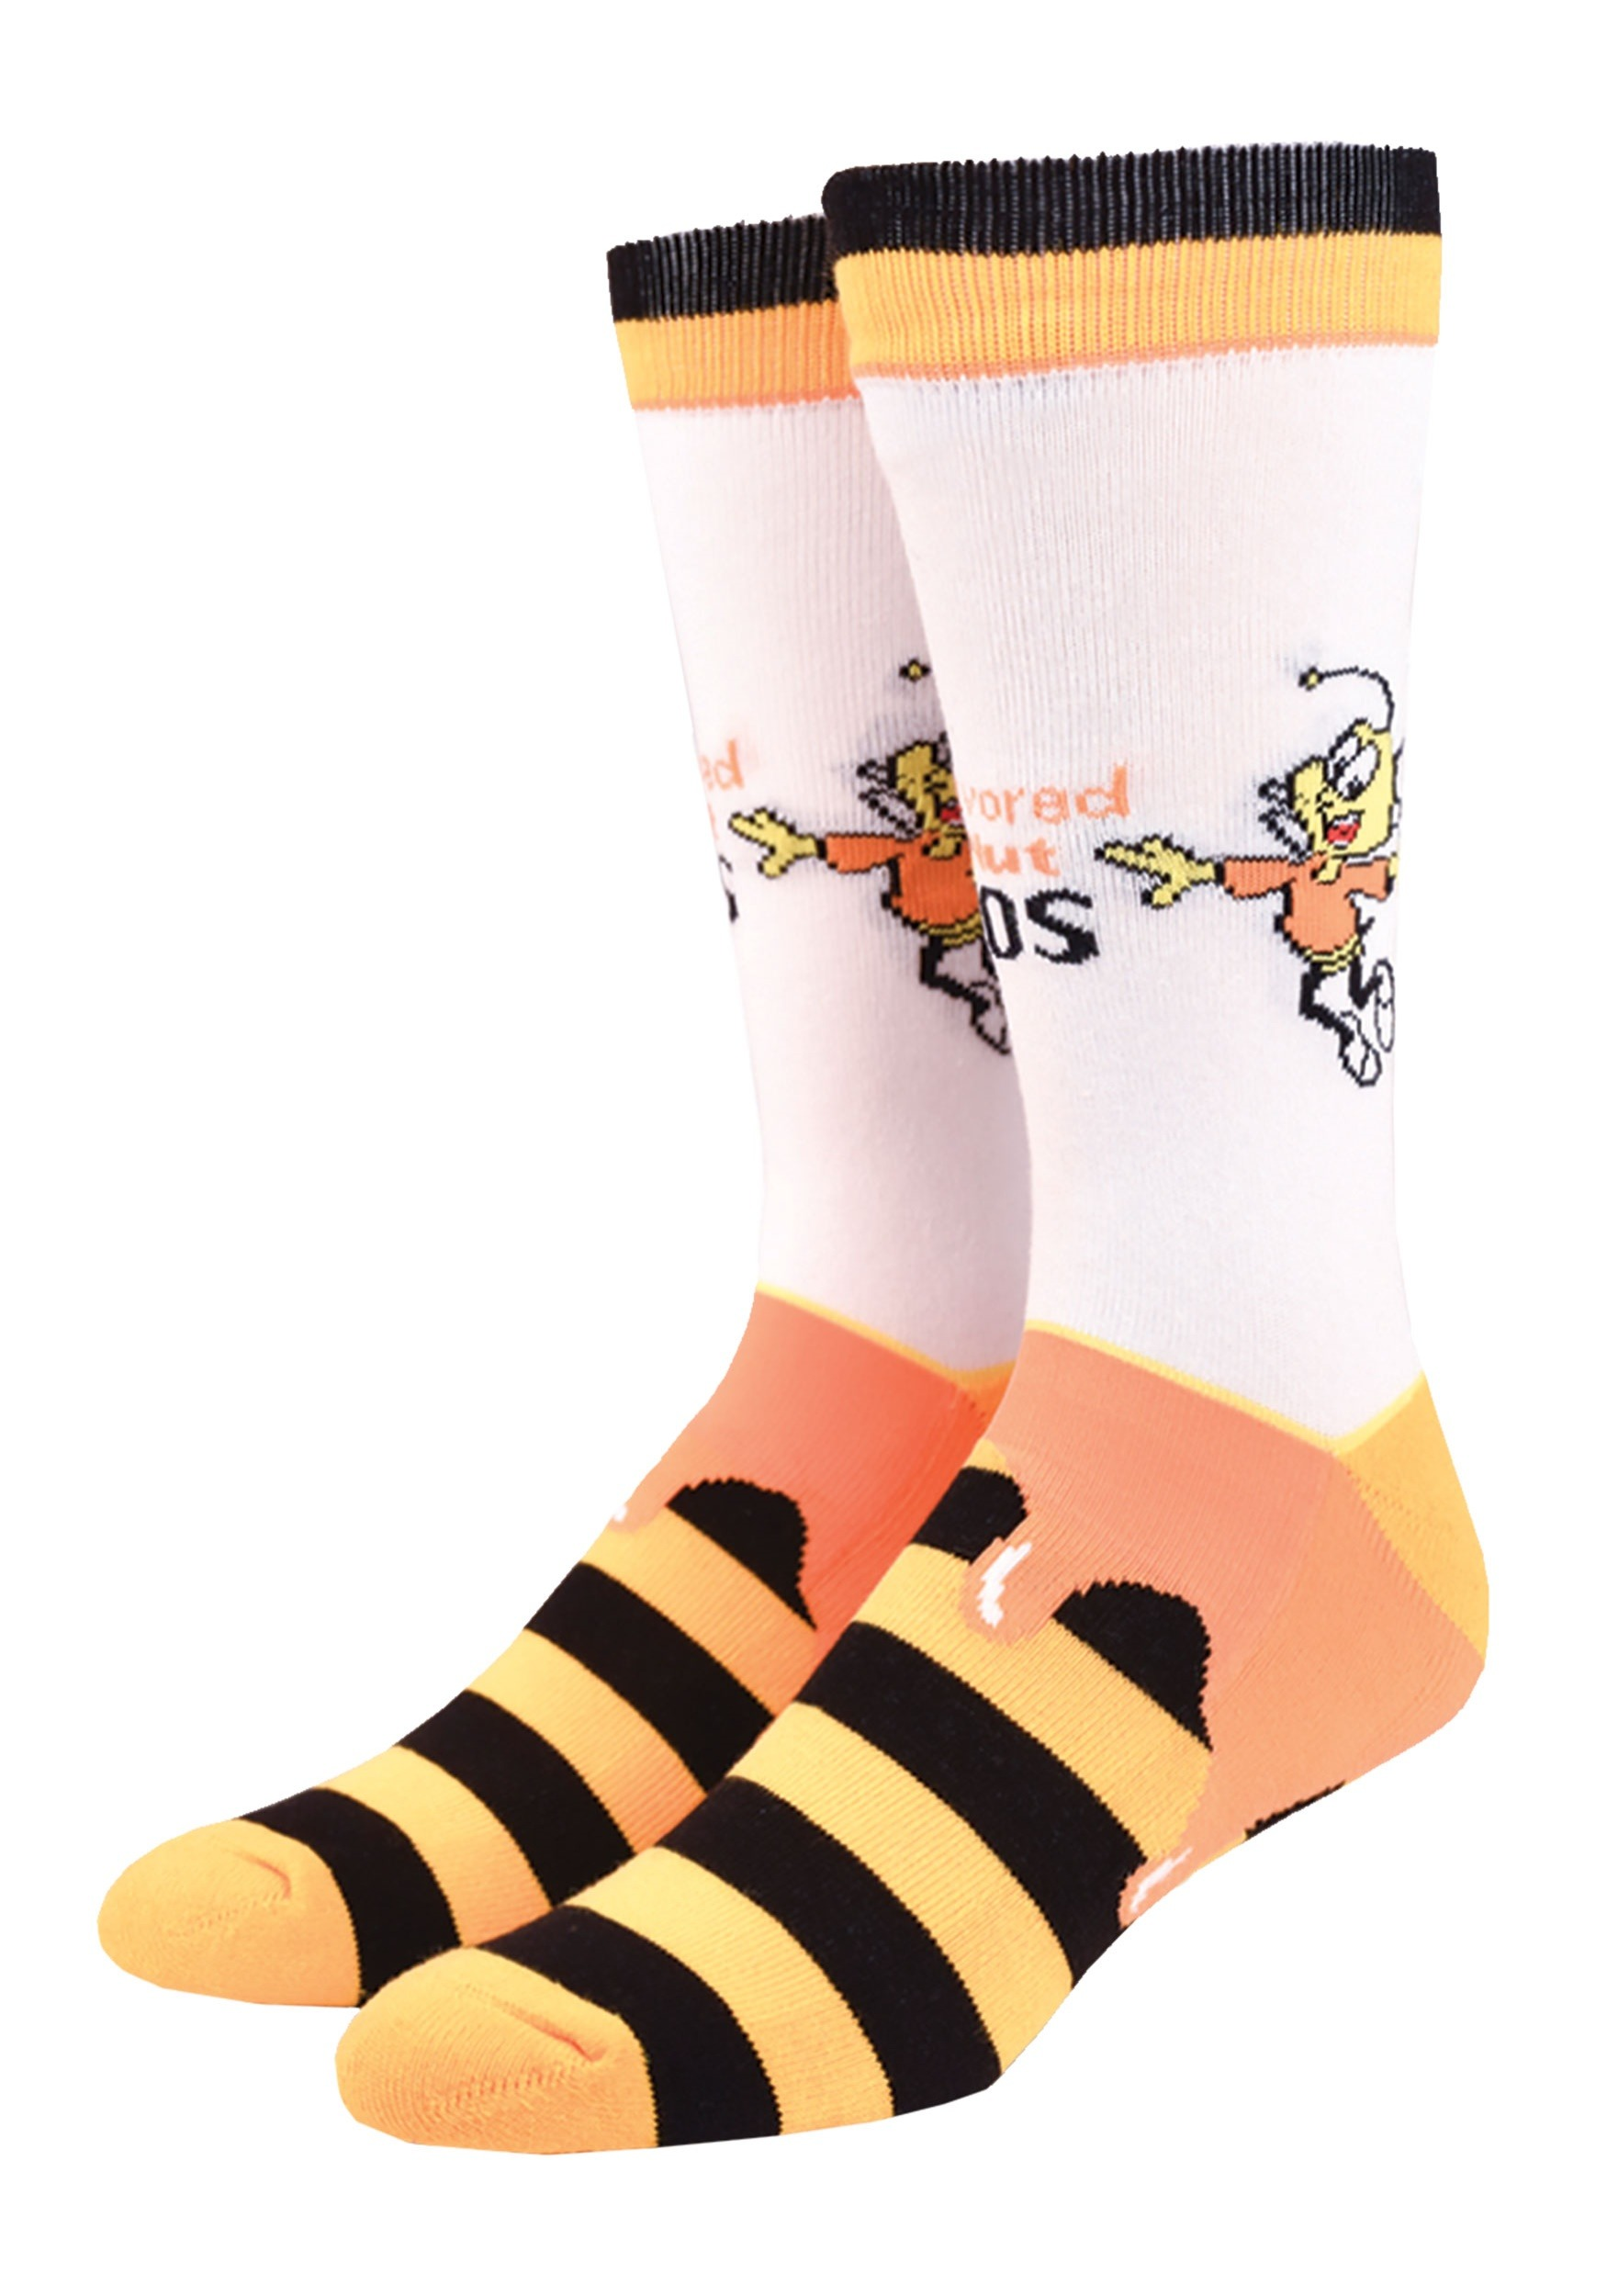 Cool Socks Honey Nut Cheerios Adult Socks